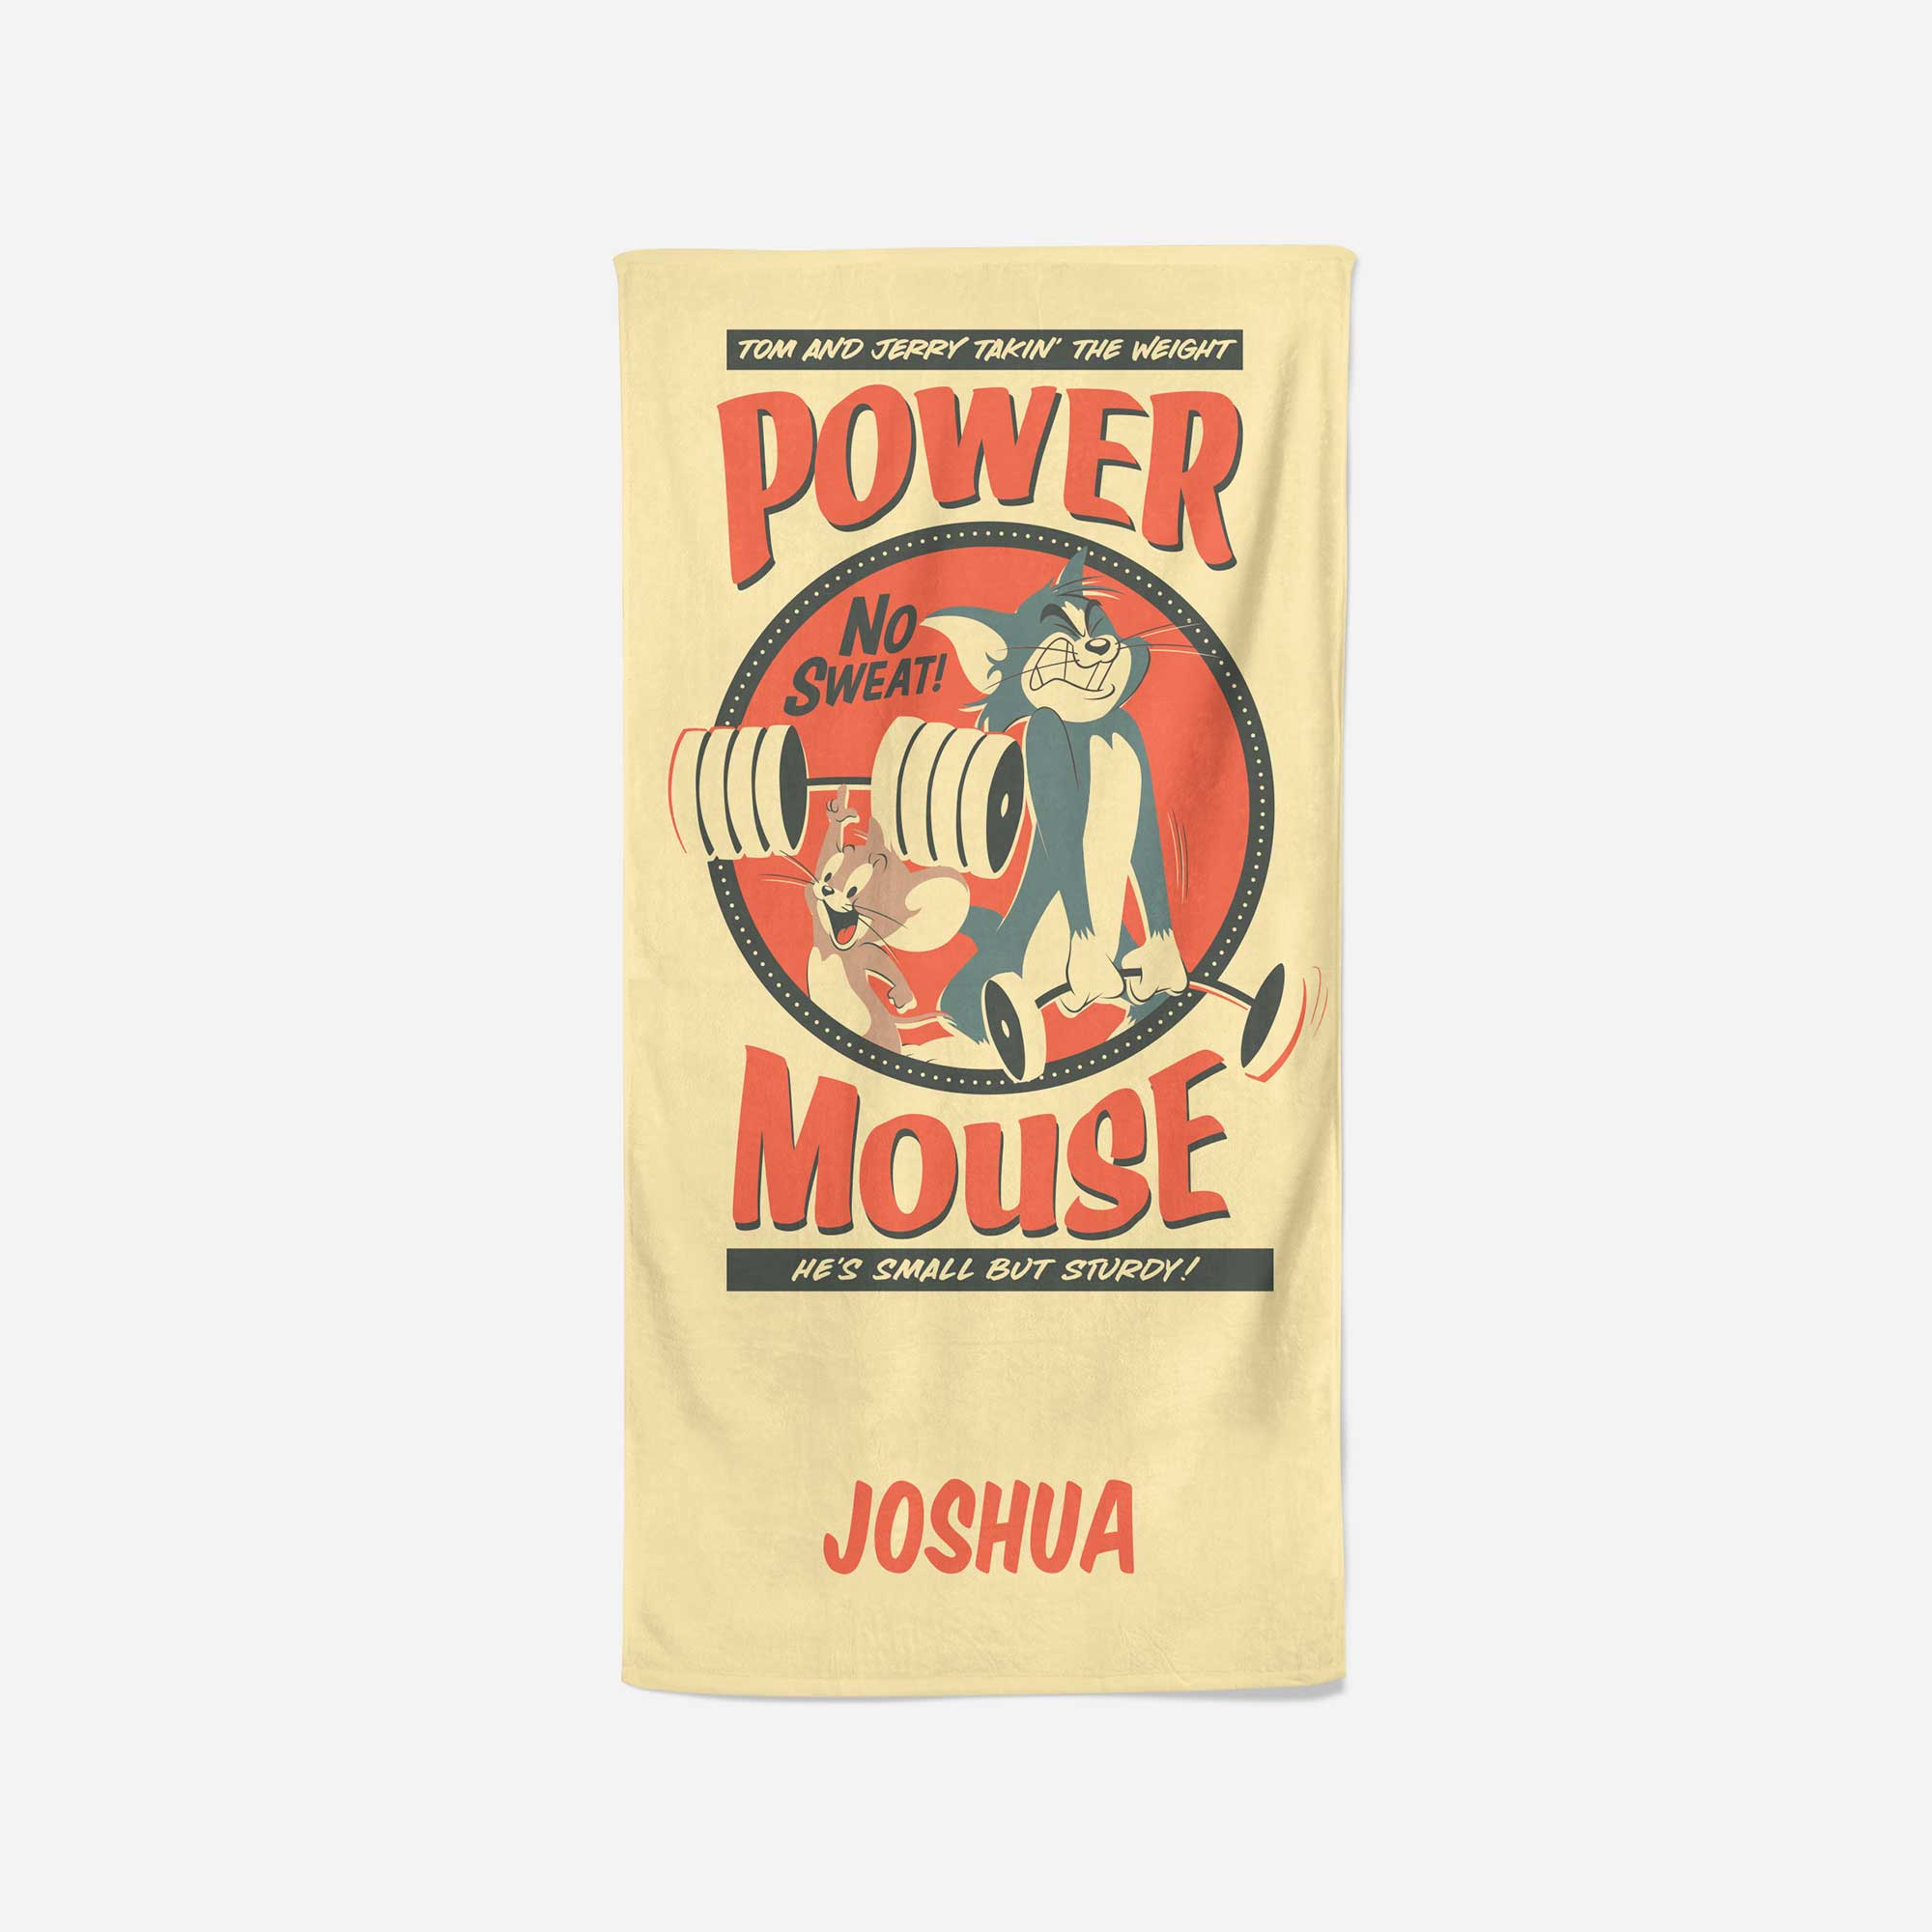 Tom and Jerry™ Personalised Towel - Power Mouse